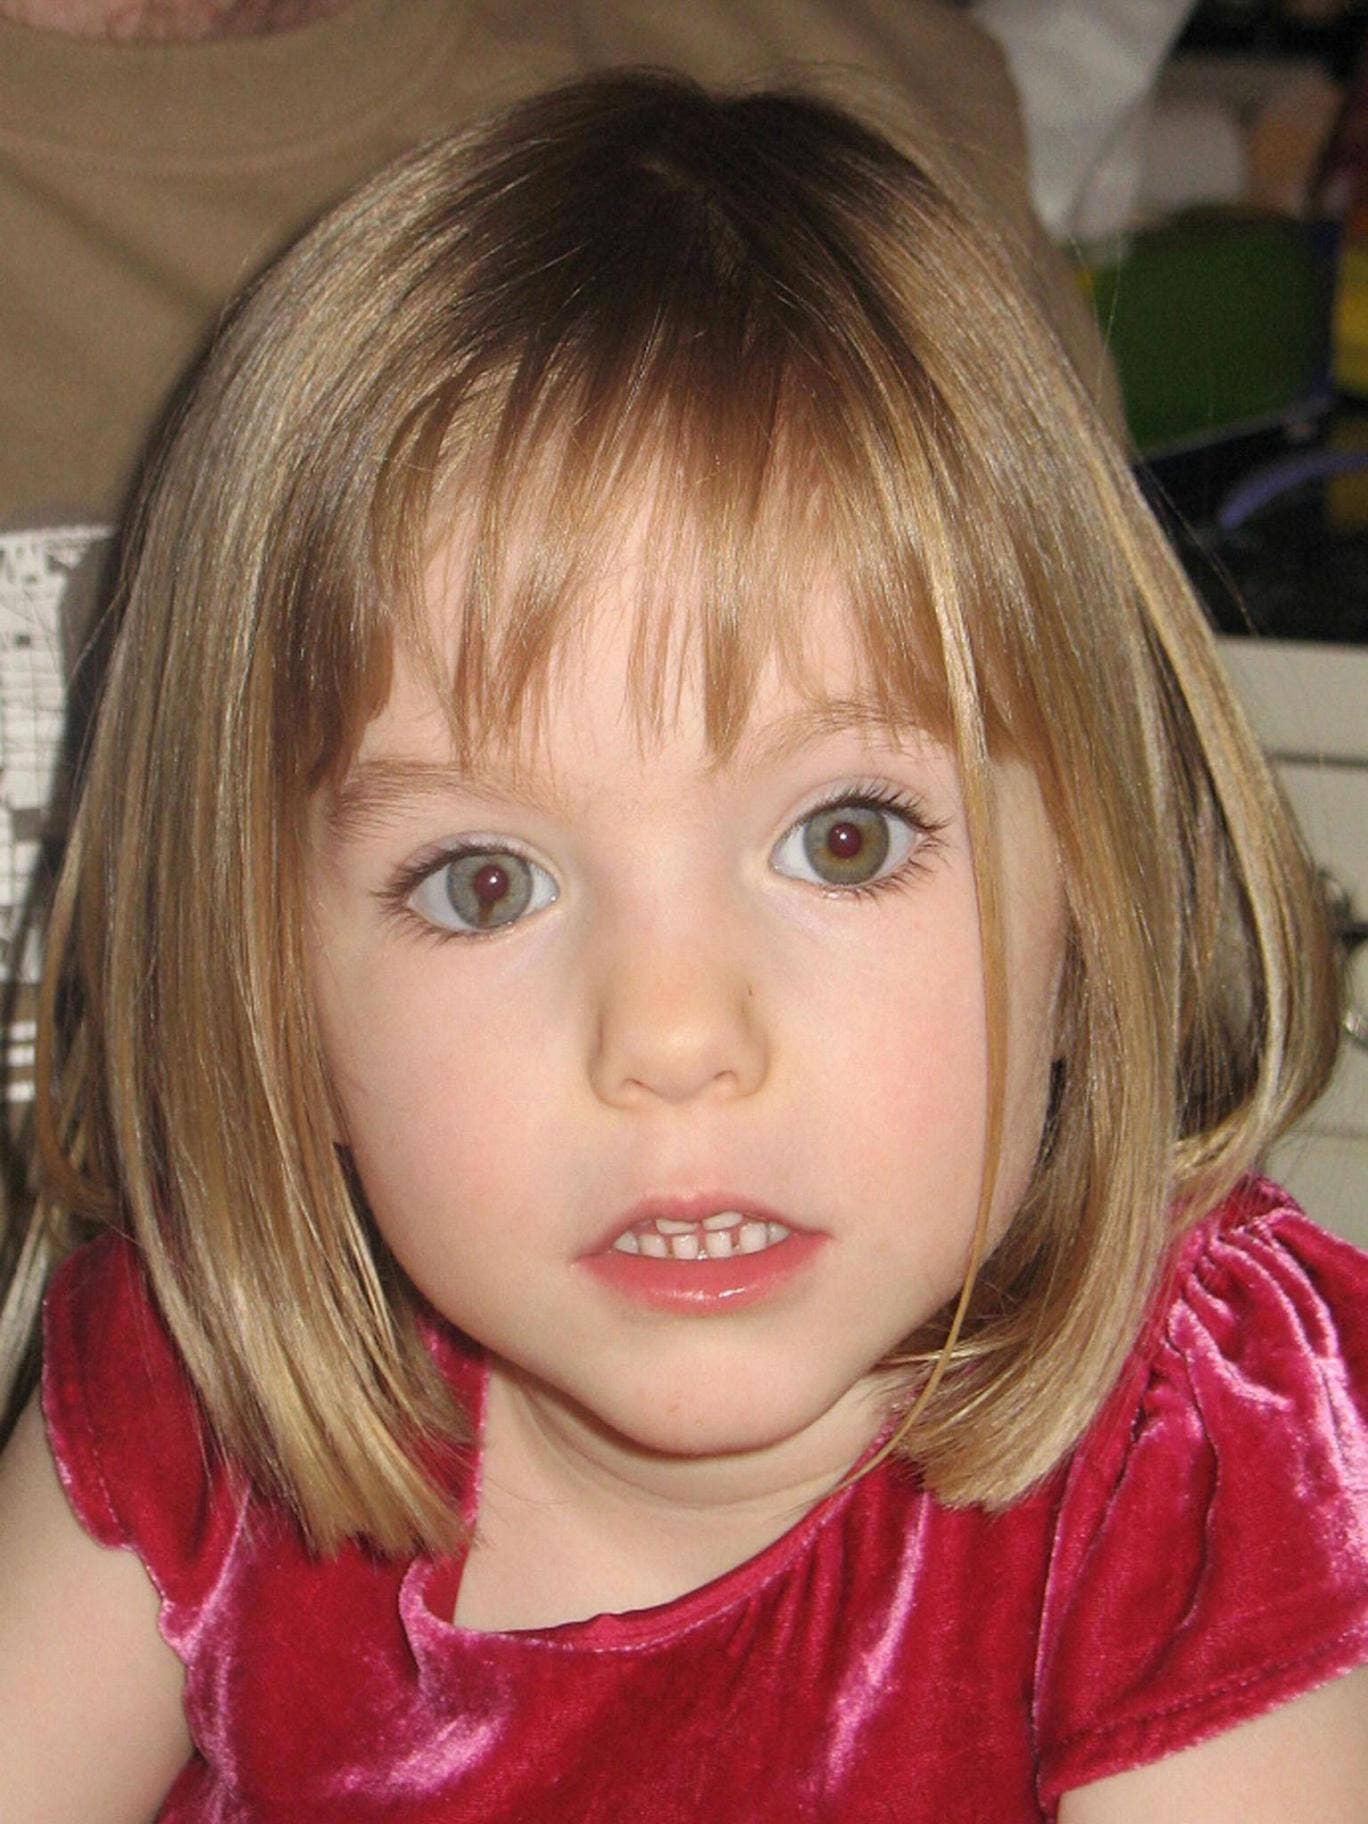 Madeleine McCann: The girl was three when she was abducted during a family holiday in 2007